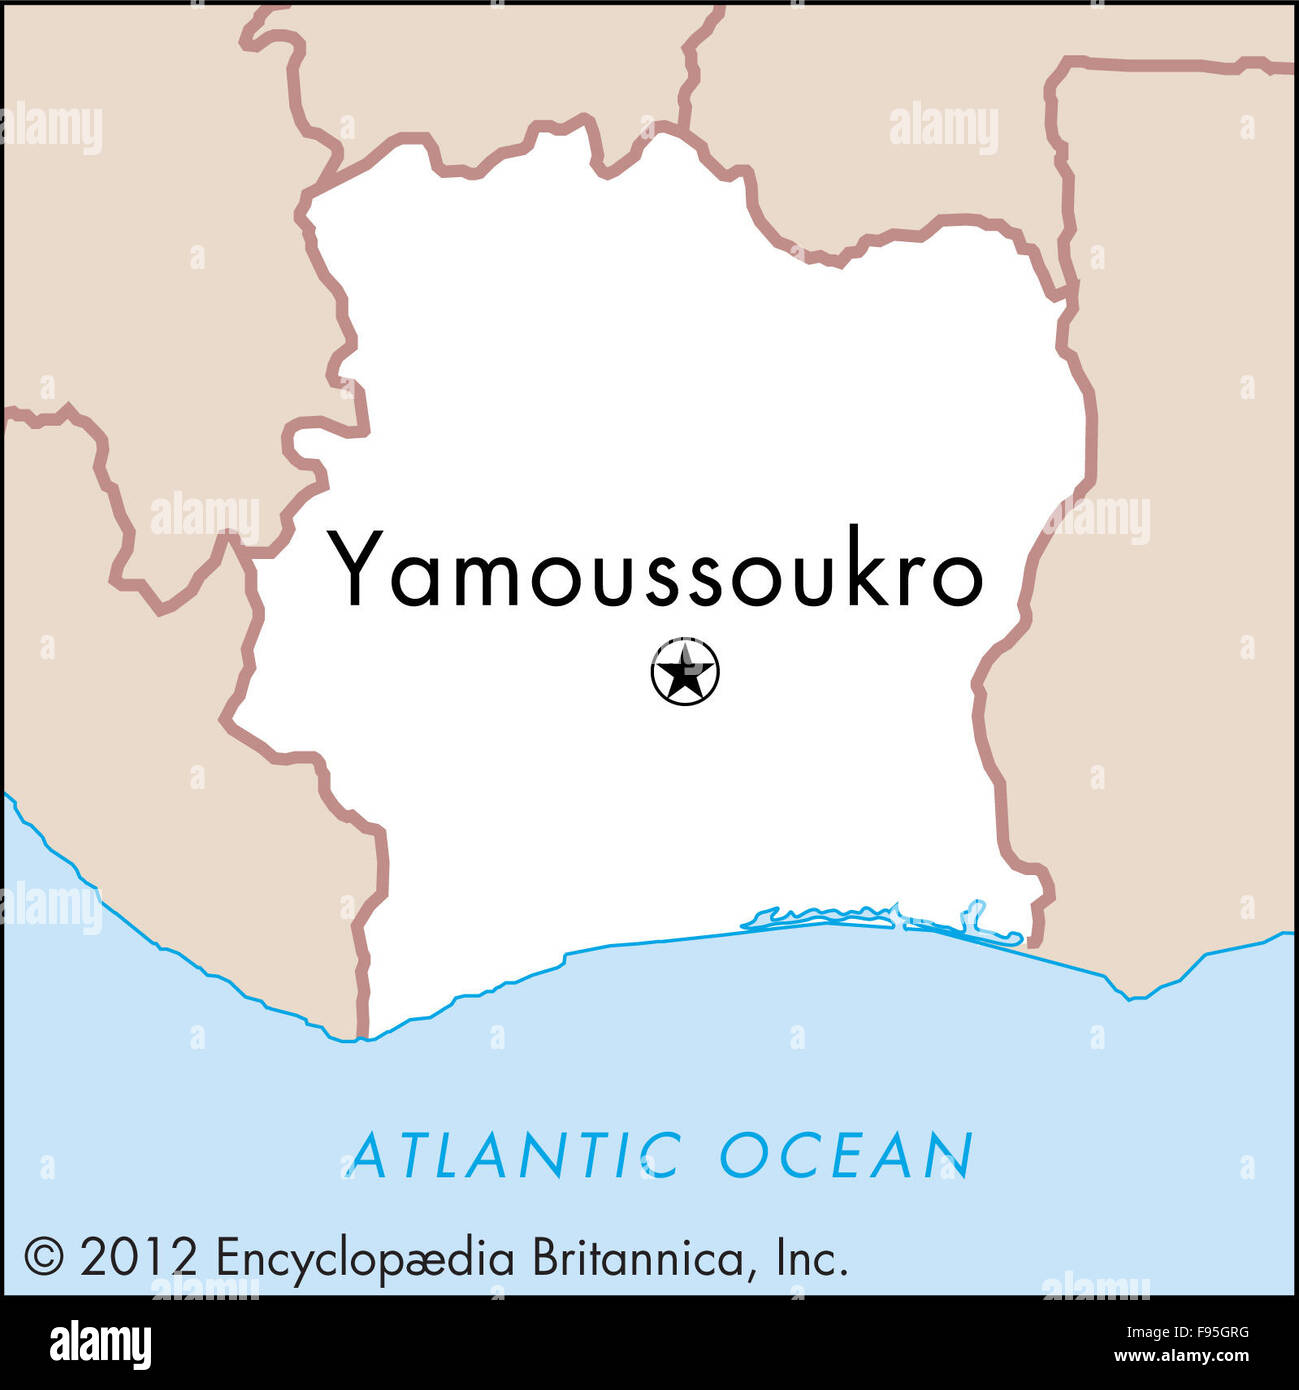 Yamoussoukro, Ivory Coast Stock Photo: 91706708 - Alamy on daloa ivory coast map, san pedro ivory coast map, abobo ivory coast map, africa ivory coast map, bouake ivory coast map, abidjan ivory coast map,